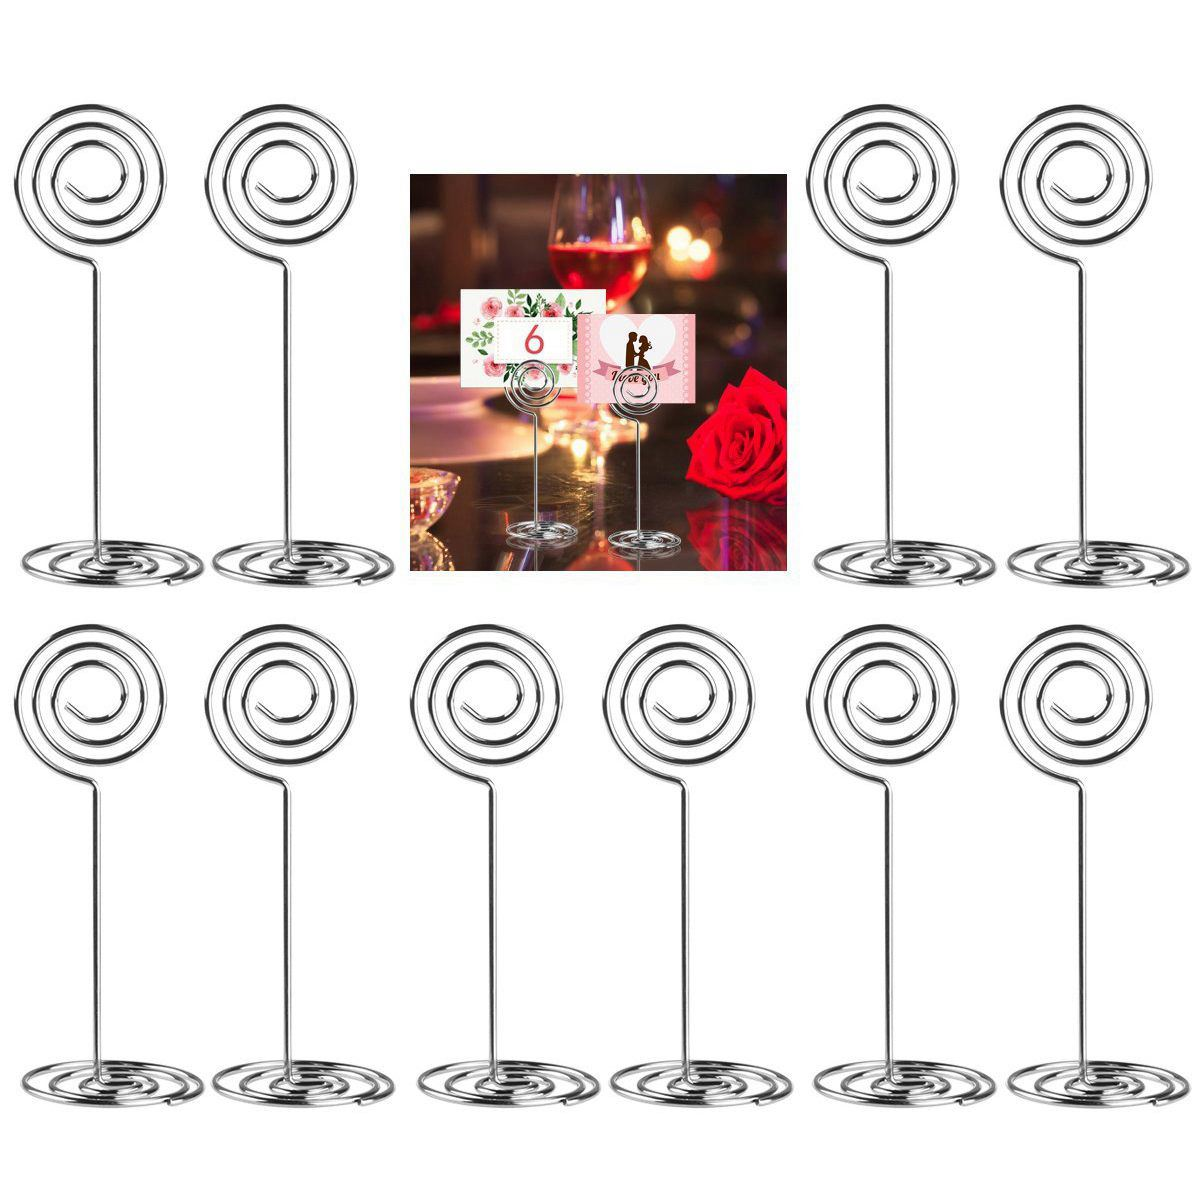 Hot Sale 10pcs Swirl Table Number Photo Holder Stands For Weddings Party Gatherings(China)